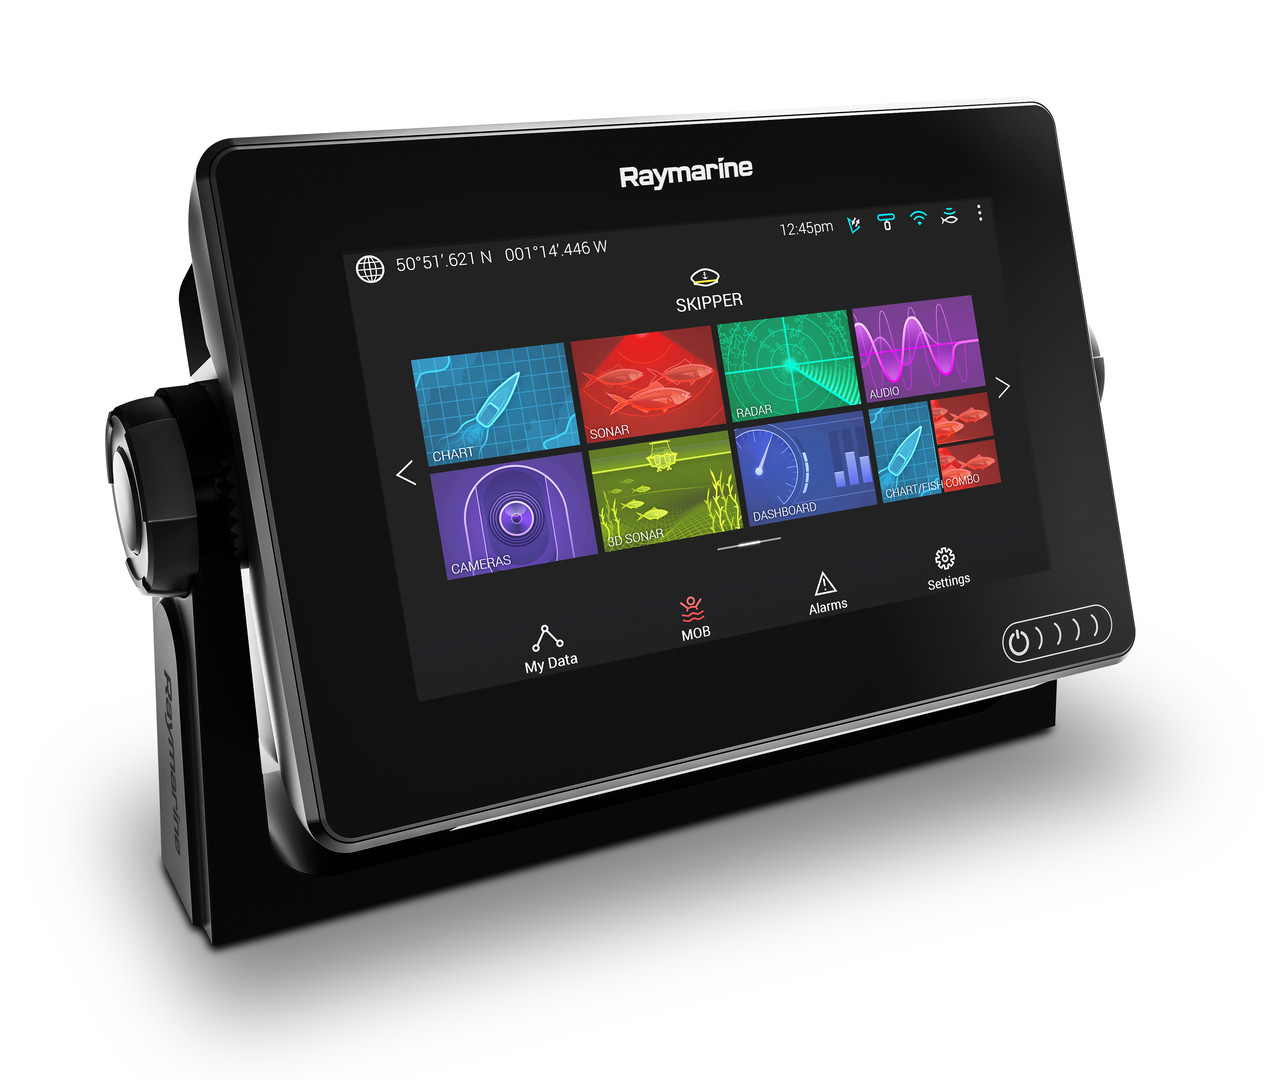 Raymarine Axiom 7 Multifunction Display Left Angle View